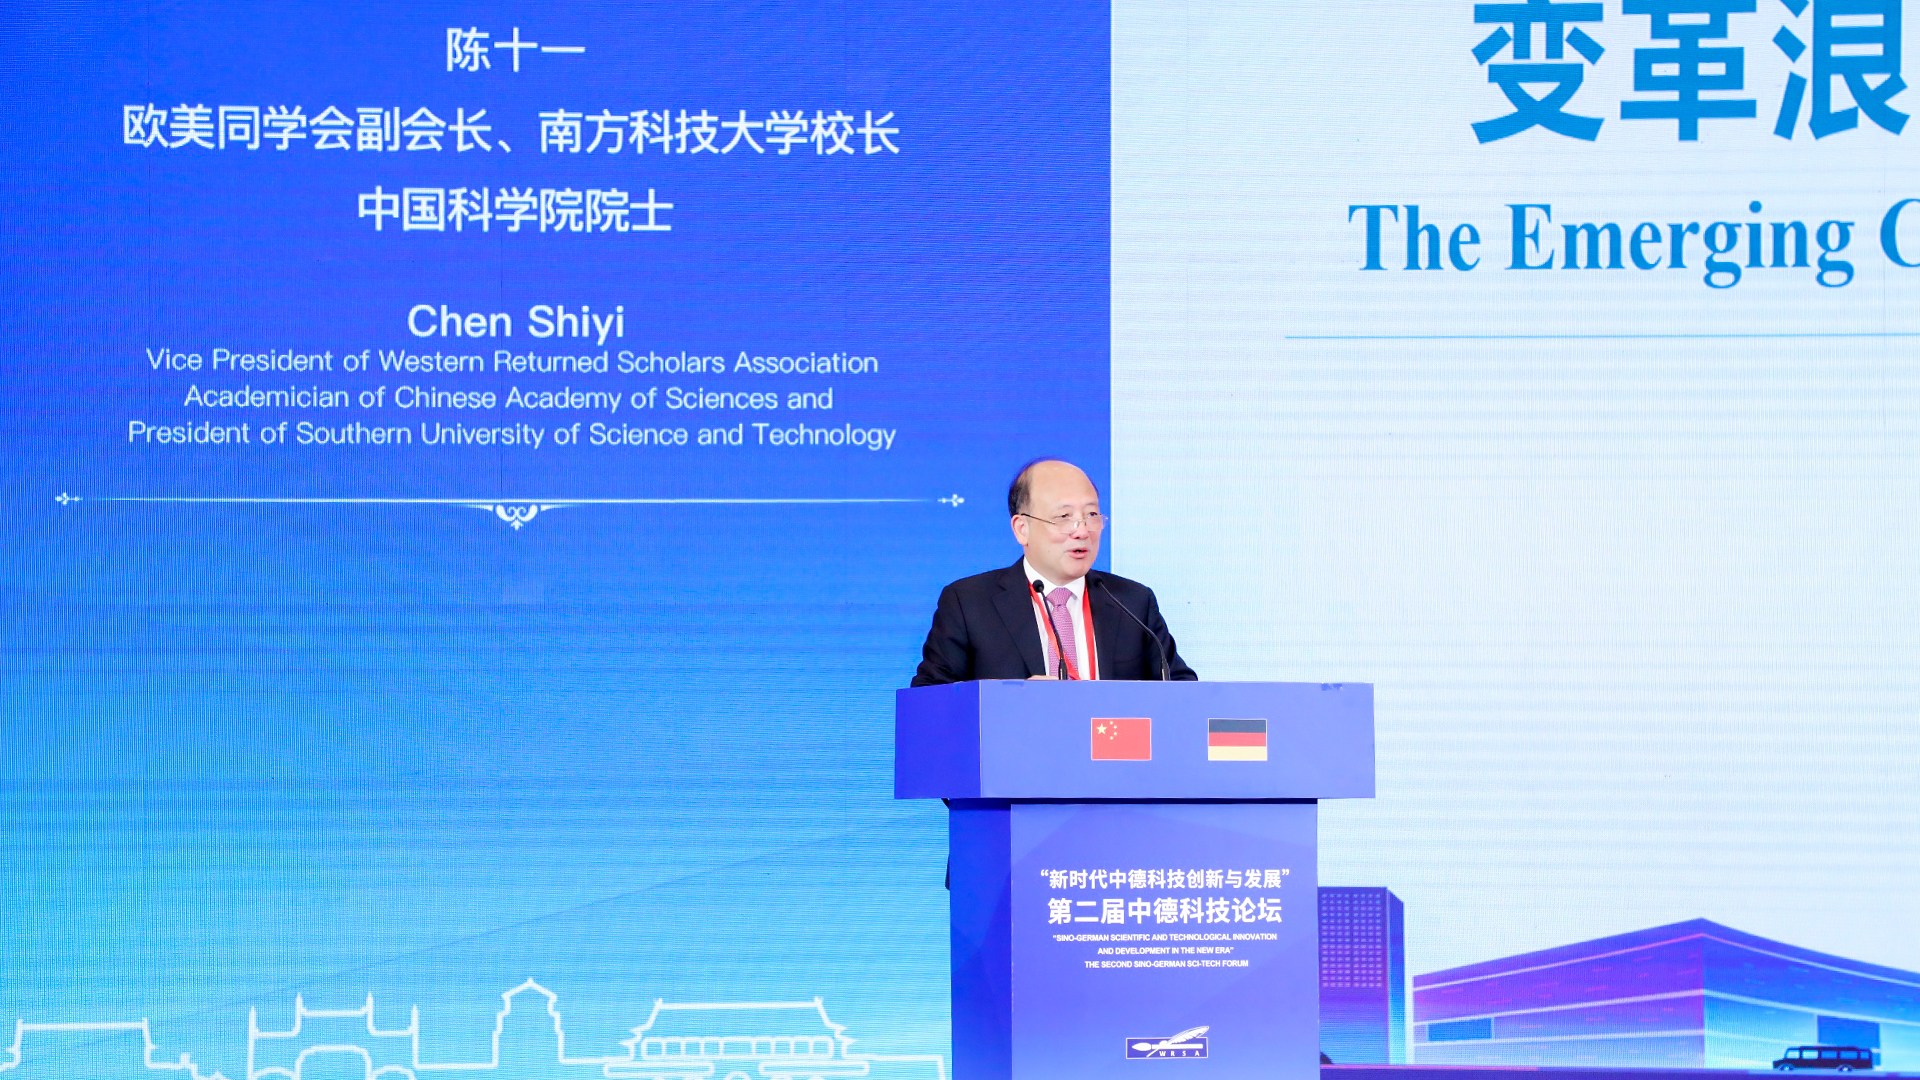 SUSTech President delivers keynote speech at 2nd Sino-German Sci-Tech Forum